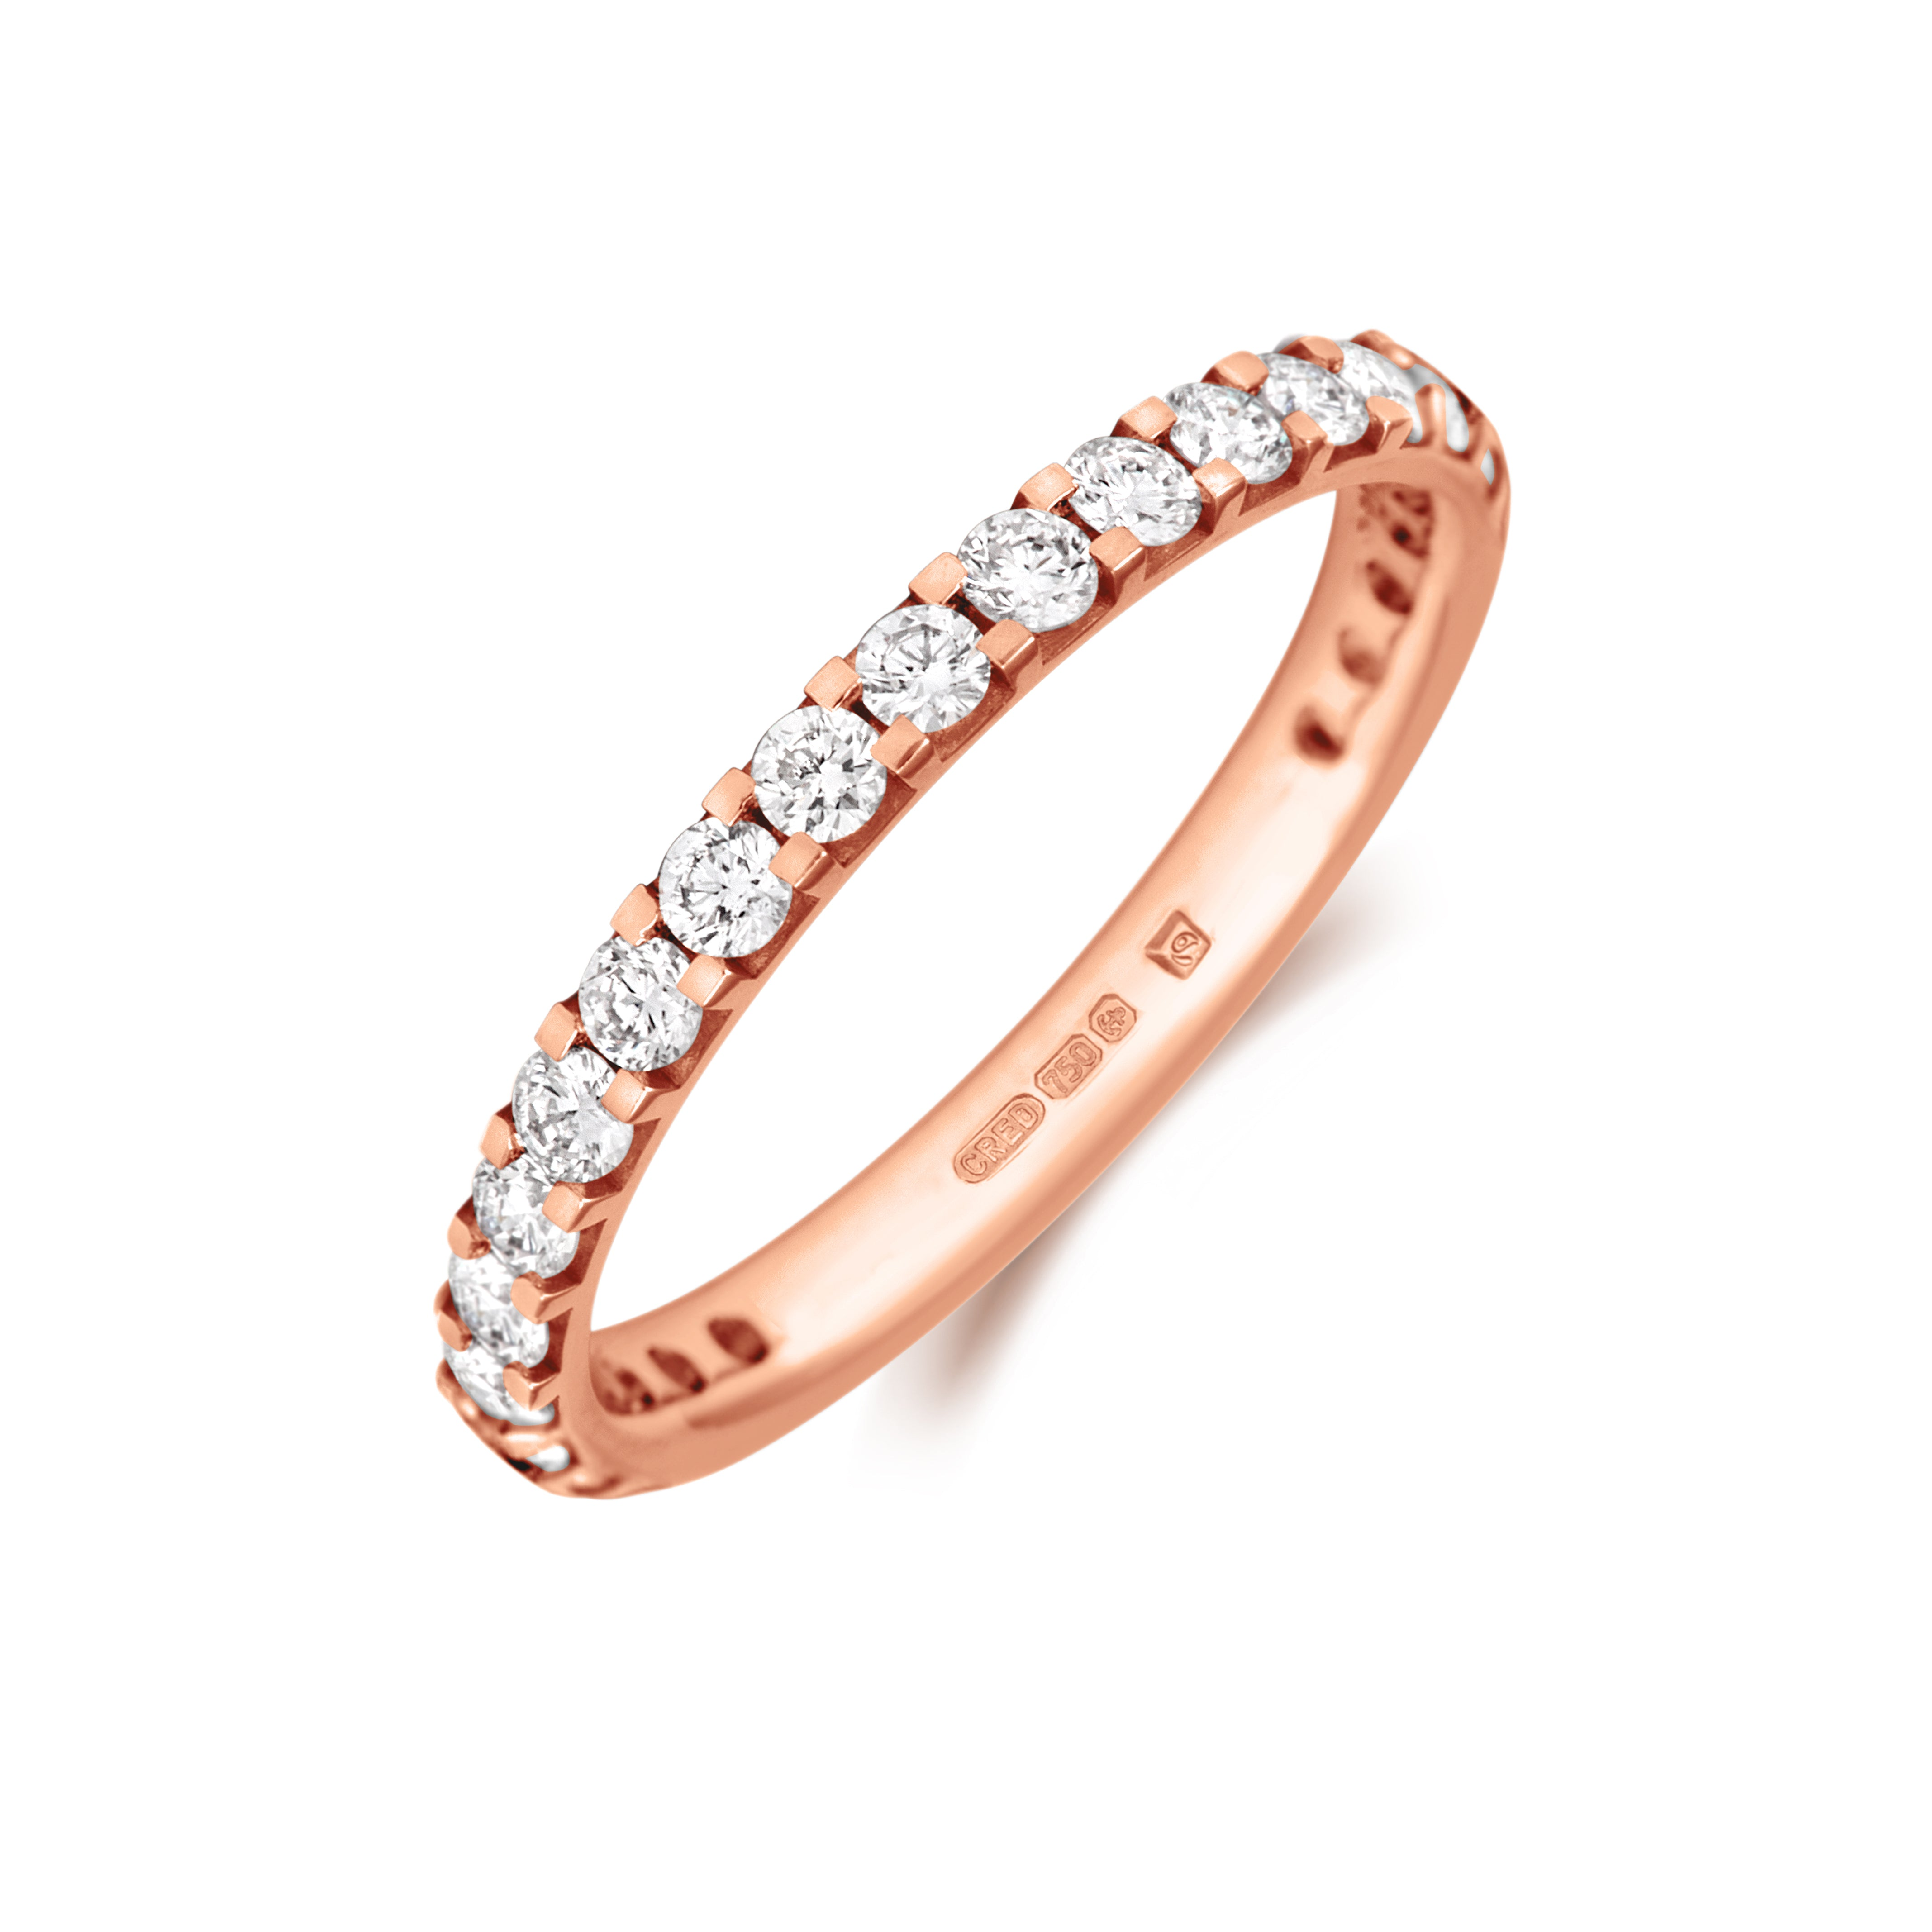 Claw Set Diamond Three Quarter Set Eternity/Wedding Ring - (18ct) Yellow, White or Rose Gold or Platinum